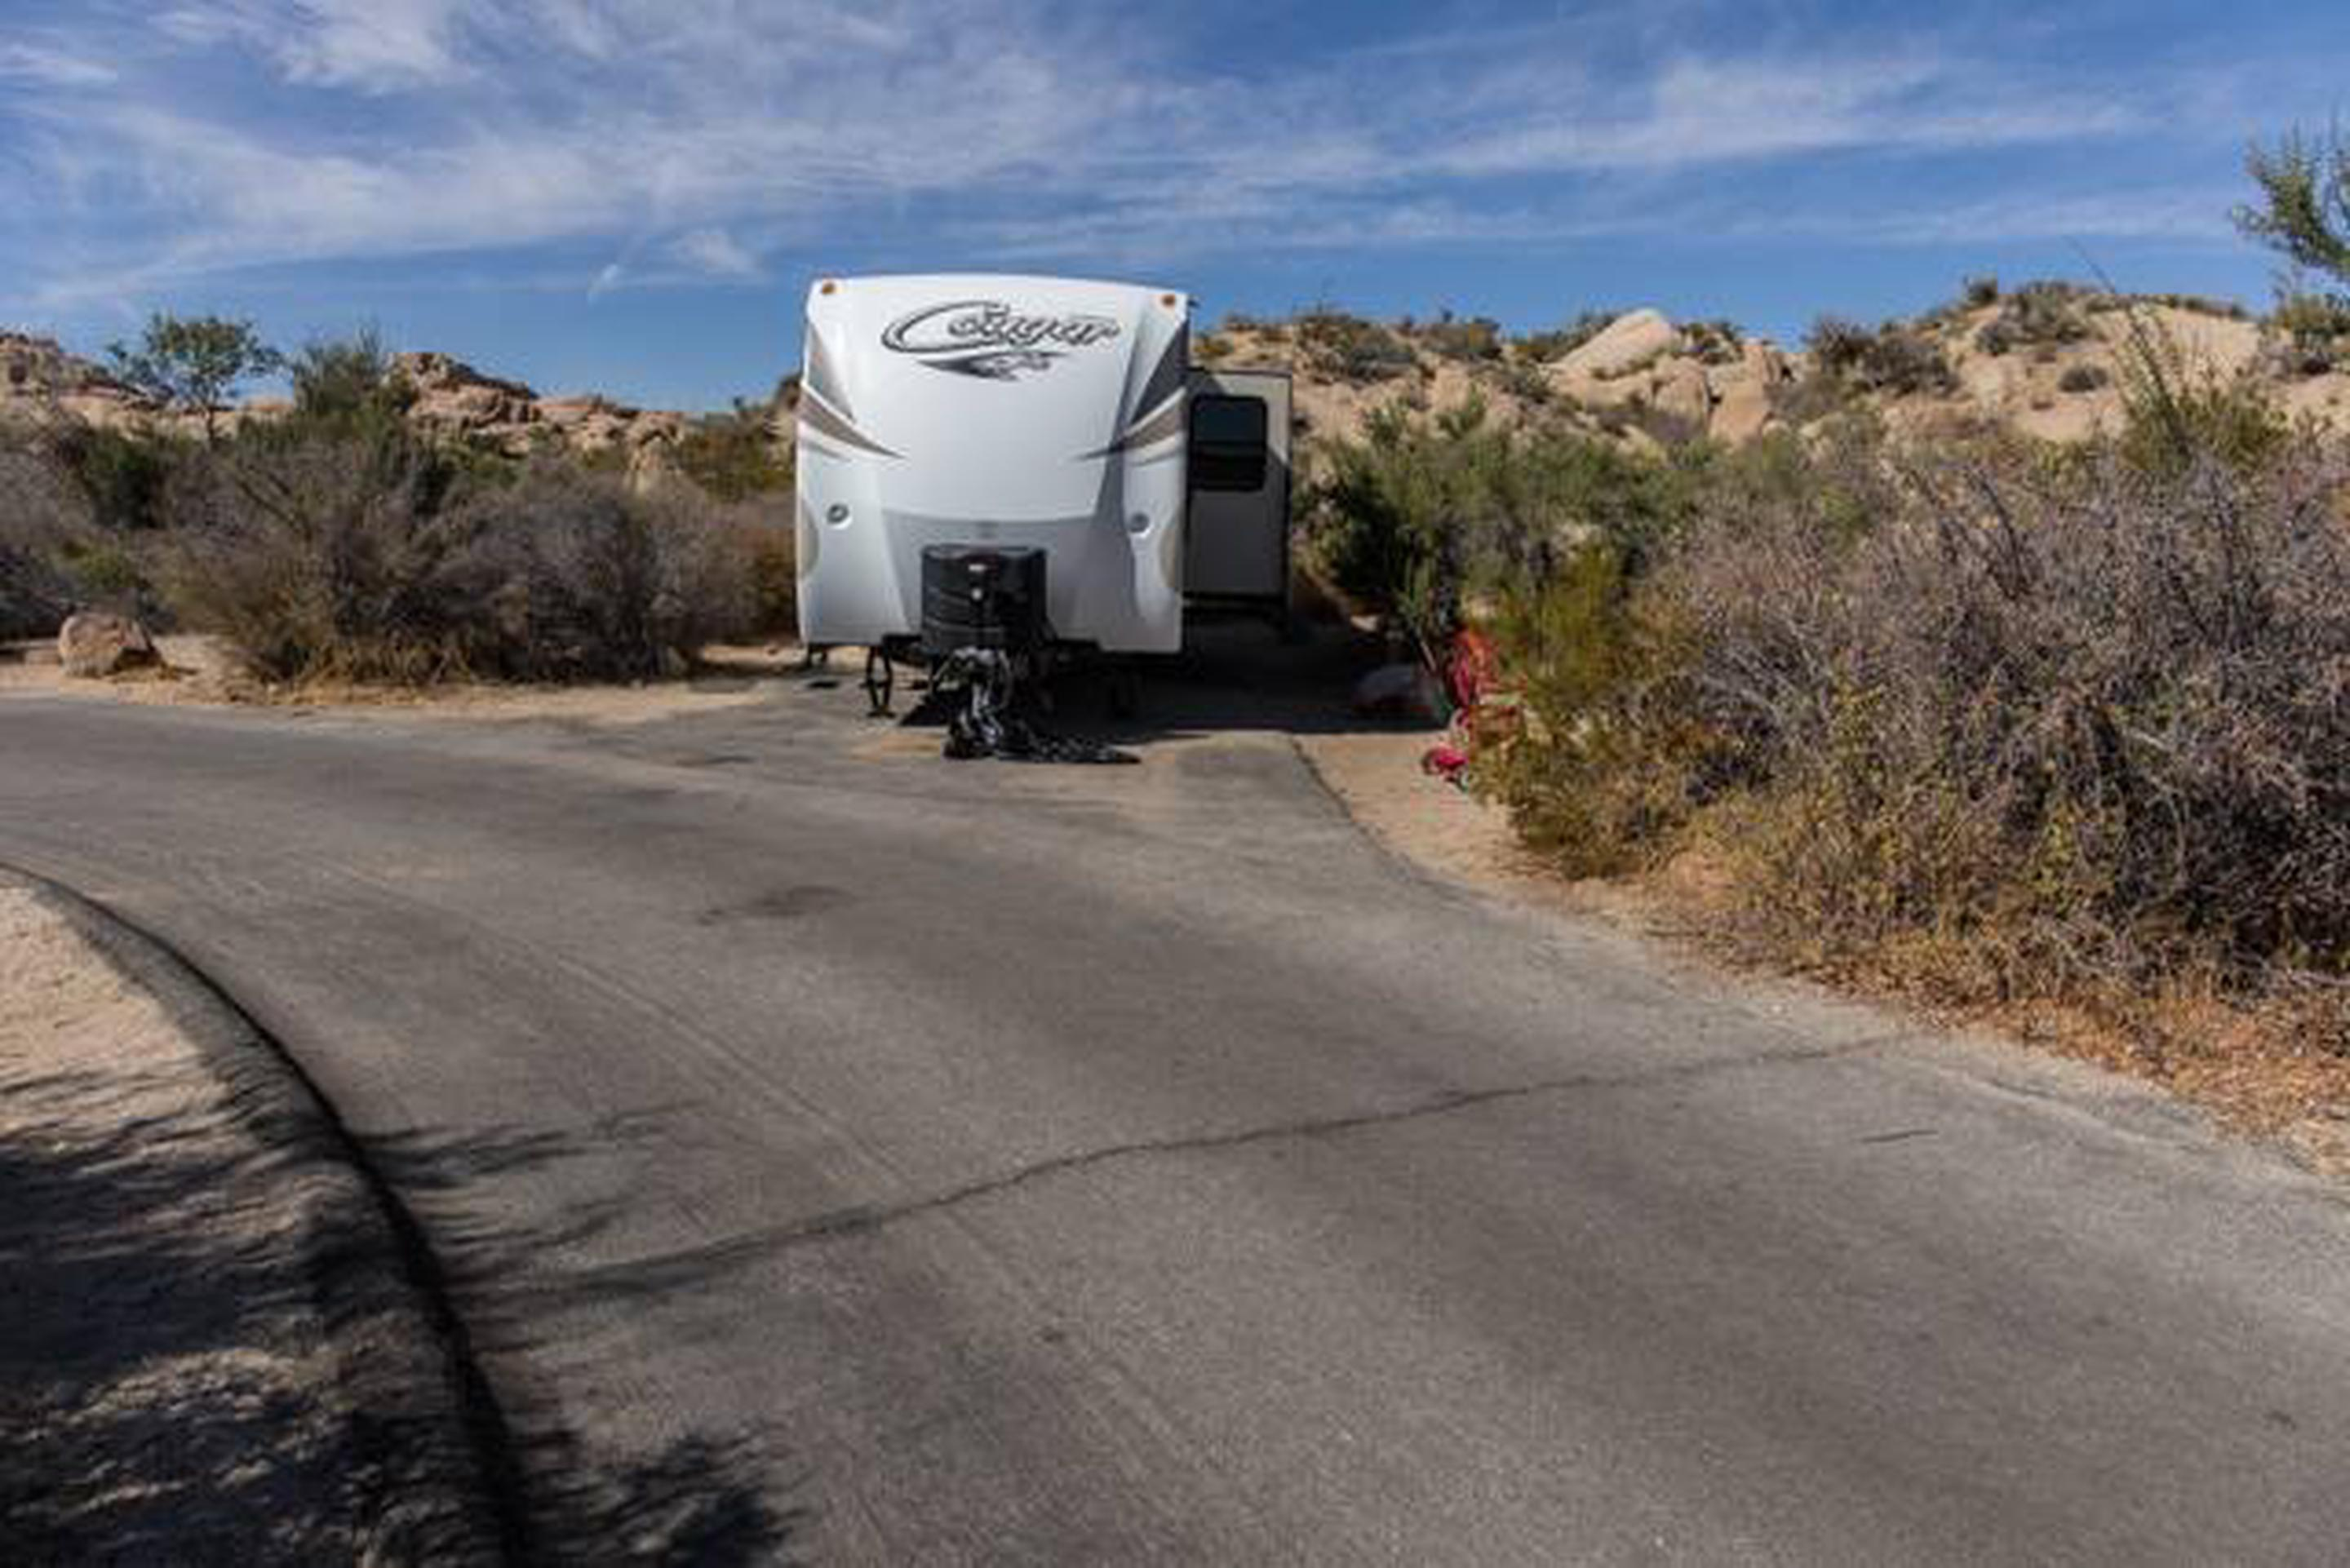 Jumbo Rocks site 97Parking space for campsite